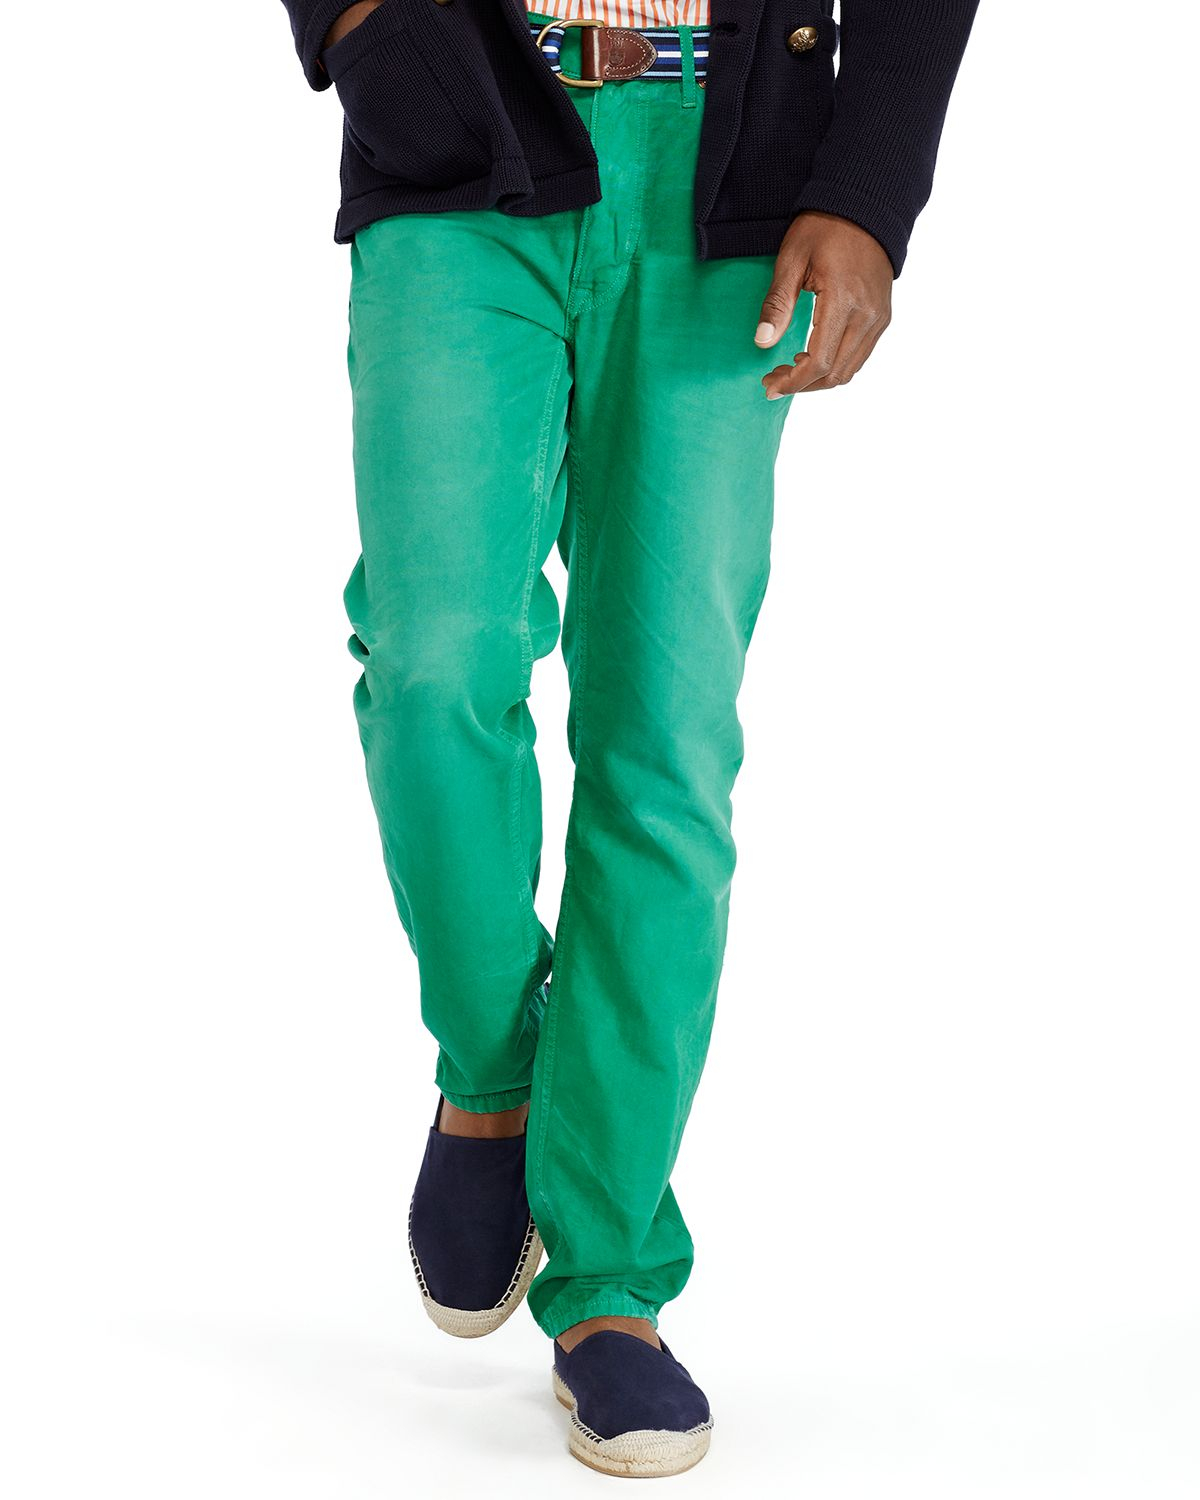 ralph-lauren-green-polo-varick-slim-straight-5-pocket-pants-product-1-27008818-1-923193391-normal.jpeg